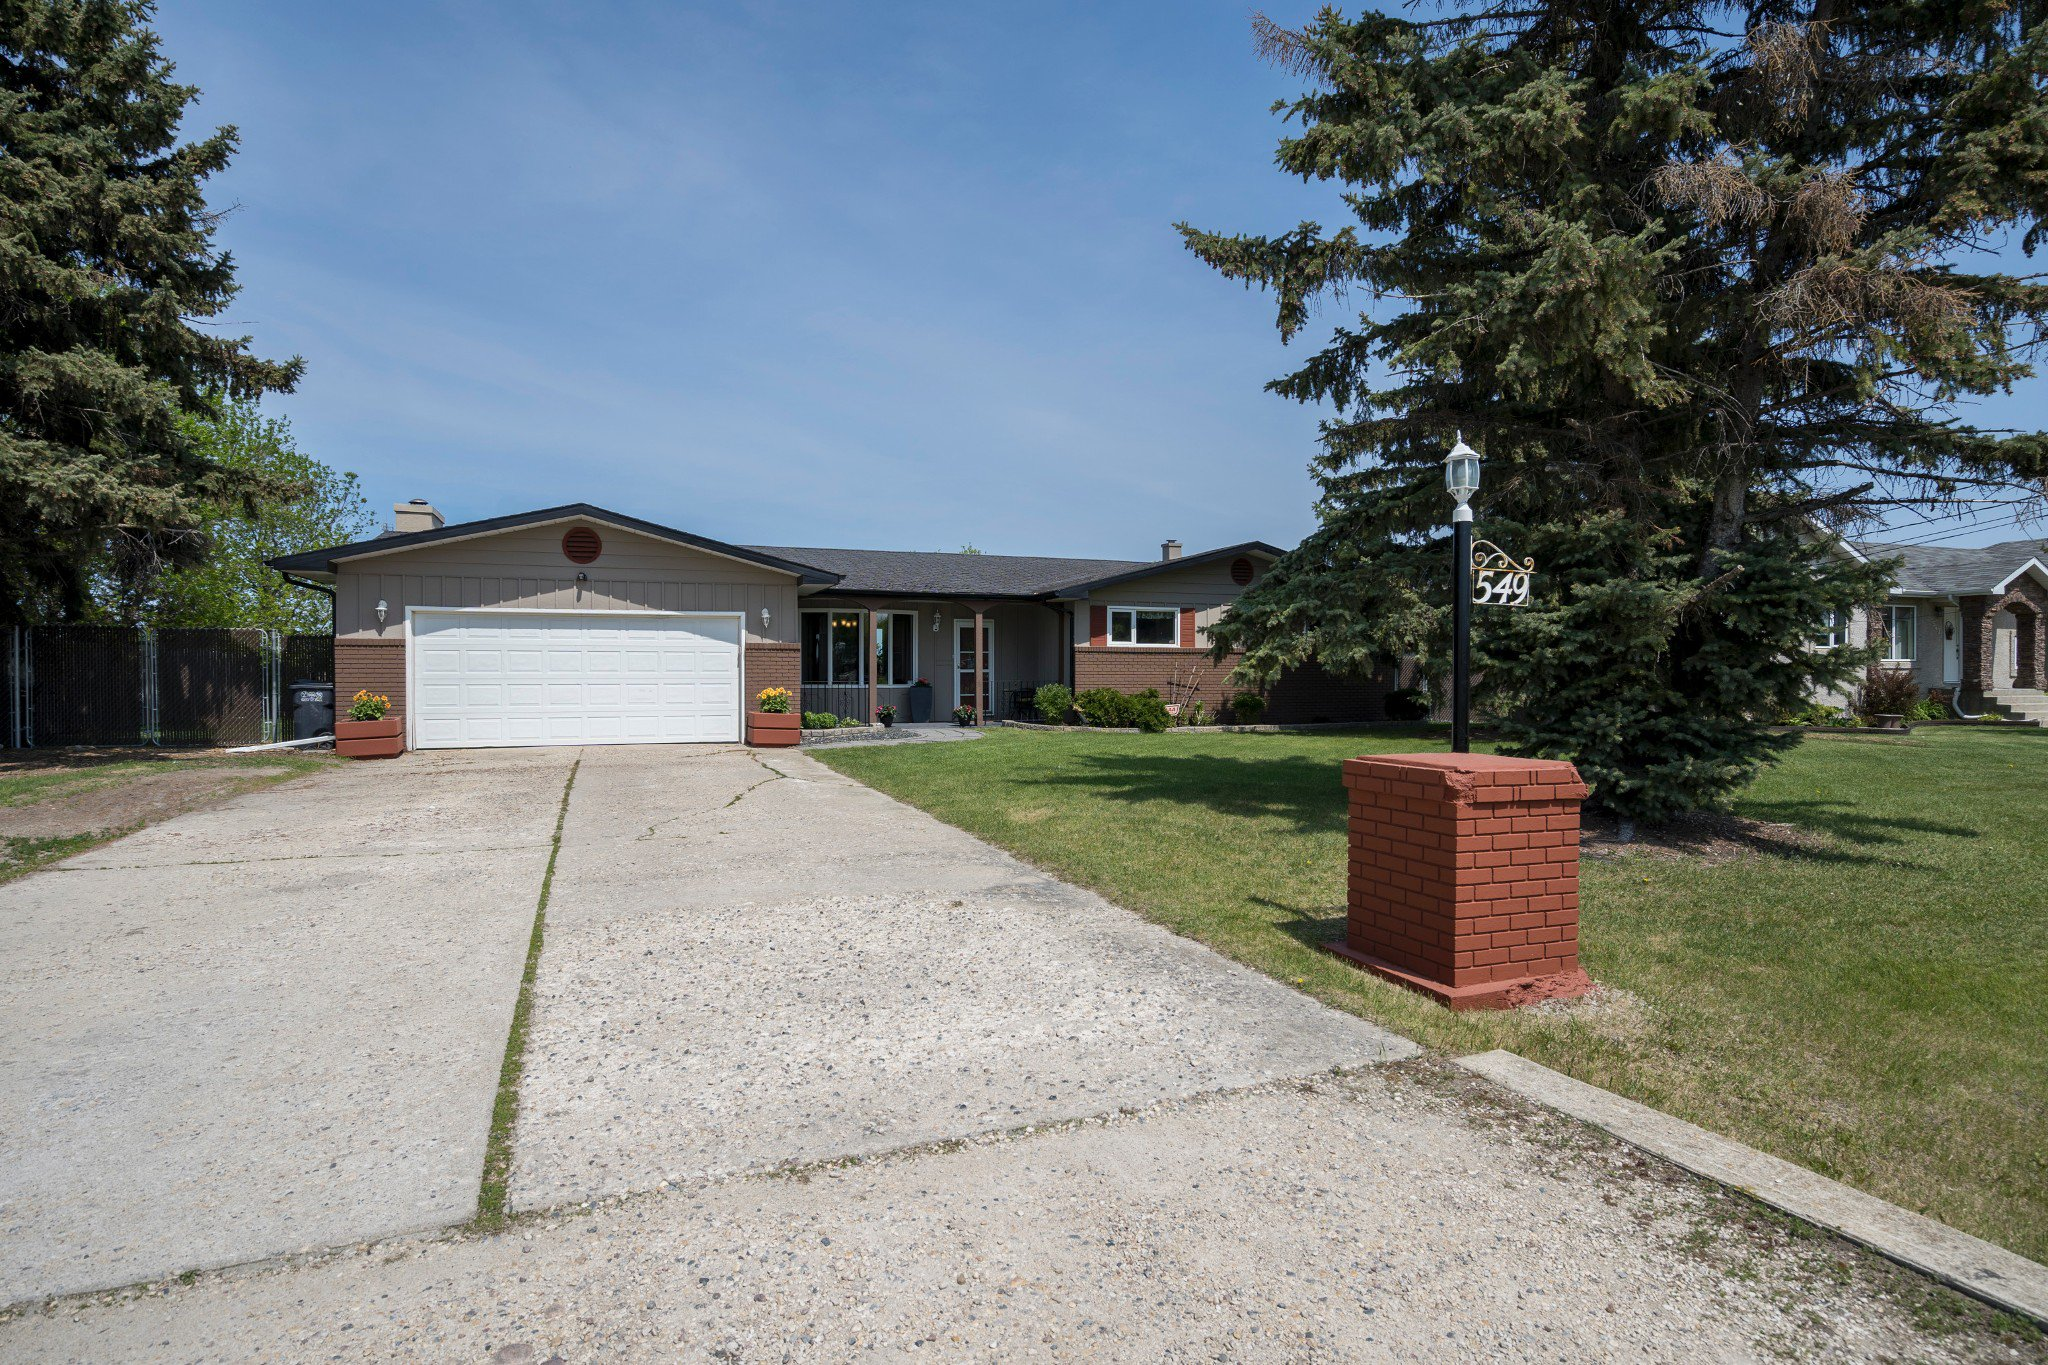 Main Photo: 549 ADDIS Avenue: West St Paul Residential for sale (R15)  : MLS®# 1914578